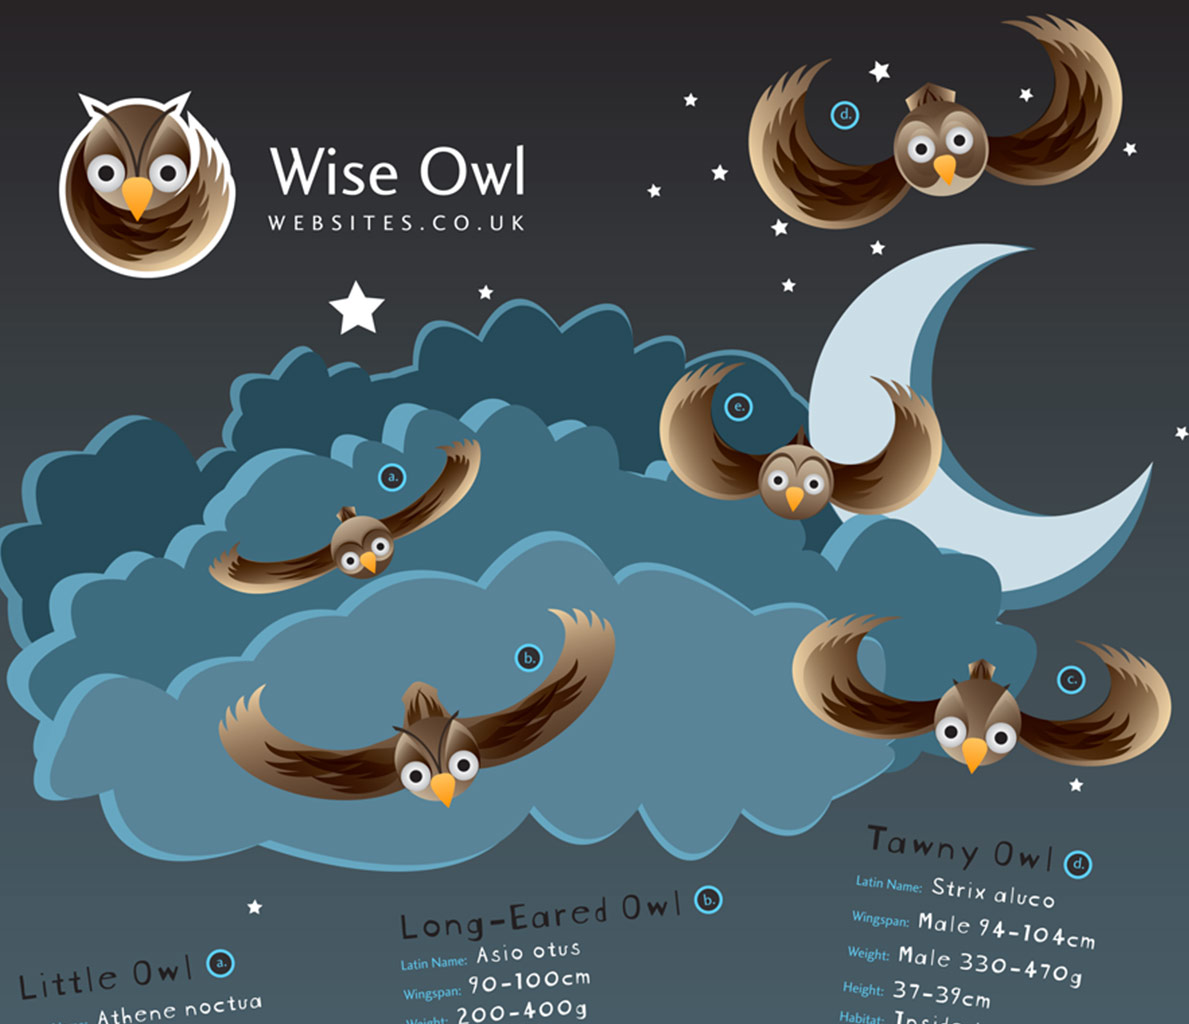 Graphic Design and Illustration for Wise Owl Websites.